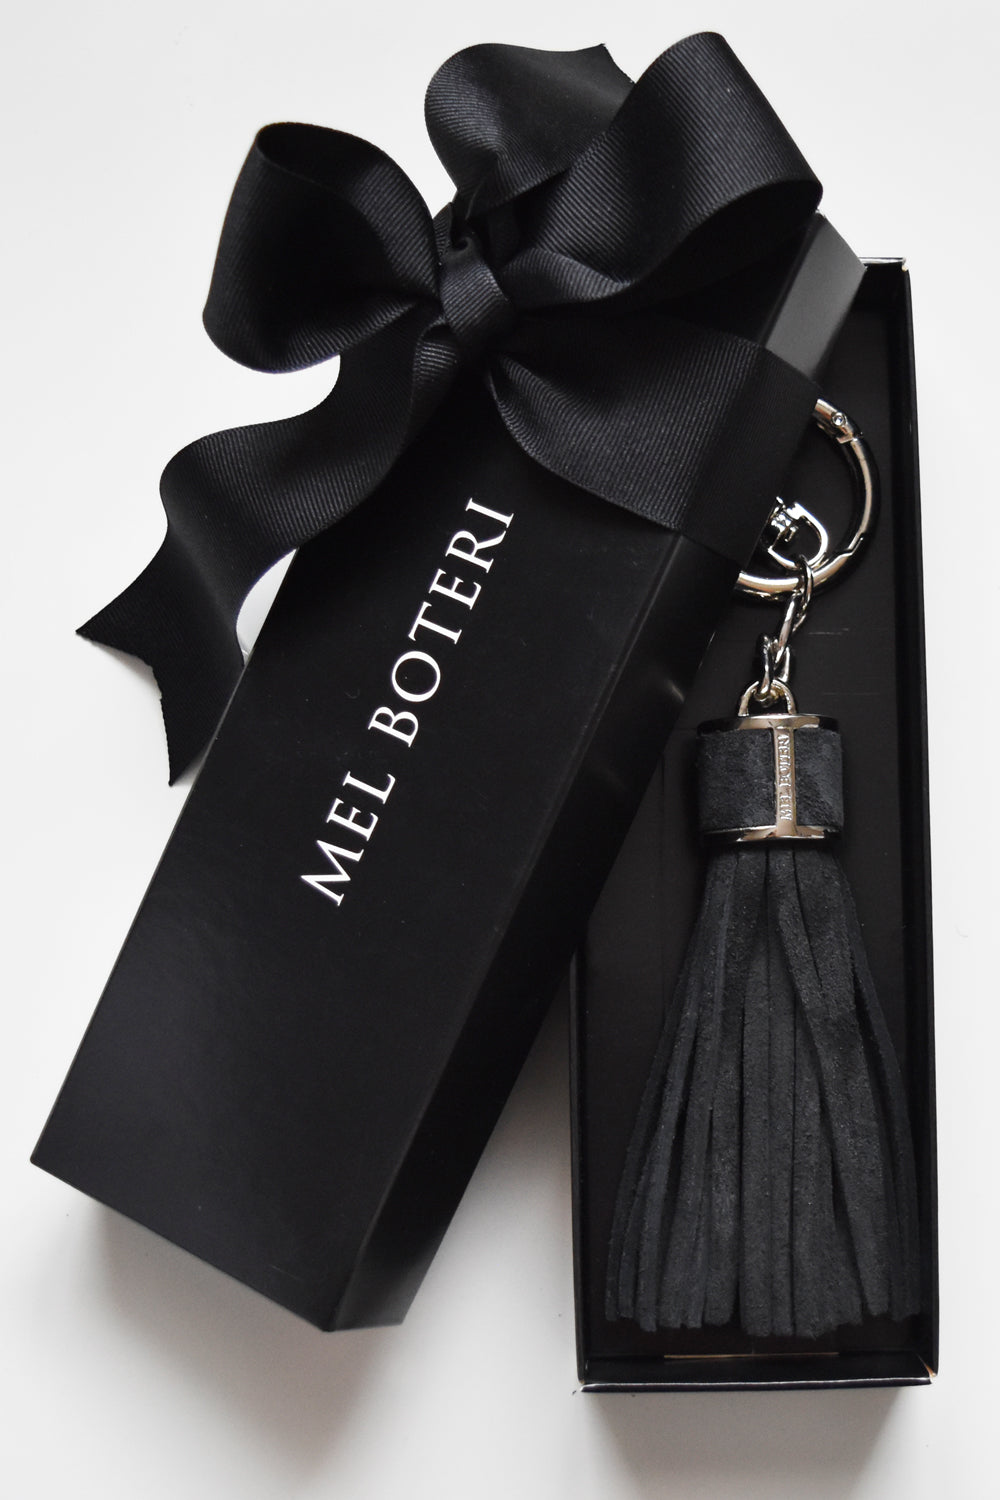 Mel Boteri | Charcoal Suede Leather Tassel Bag and Key Charm | Model